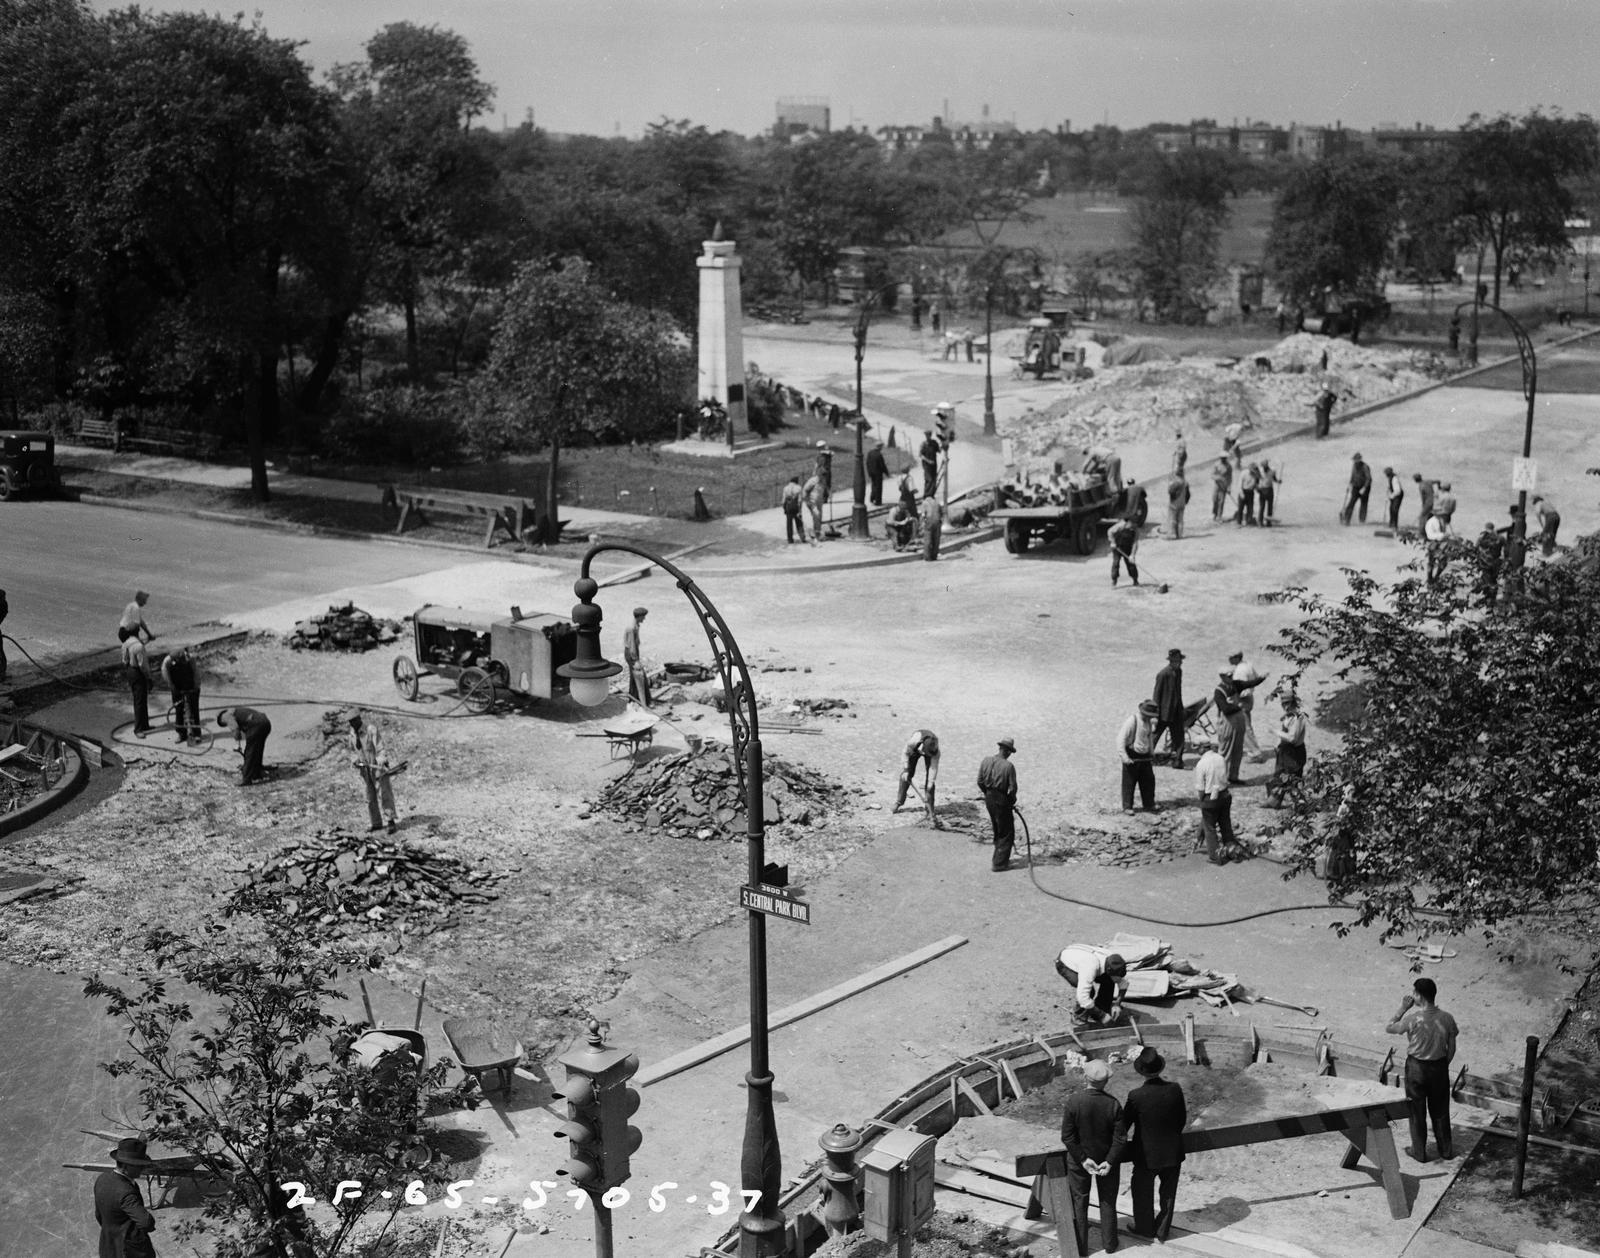 Traffic Intersection at Central Blvd and Jackson Blvd (image 05)